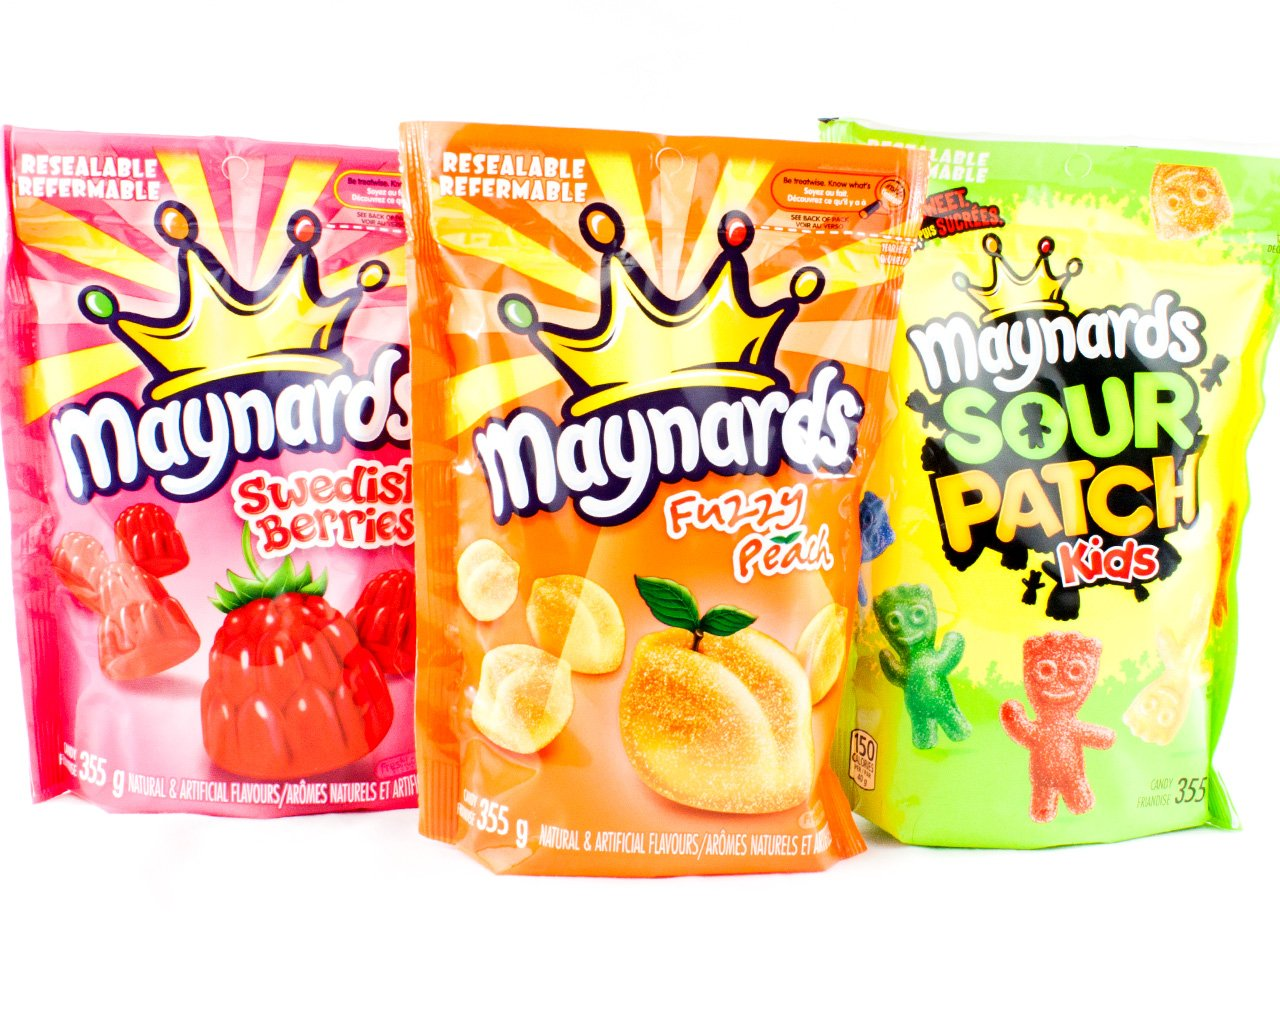 Maynards Bundle of Three Bags Candy Swedish Berries, Fuzzy Peach, Sour Patch Kids (Imported from Canada) by Mondelez International